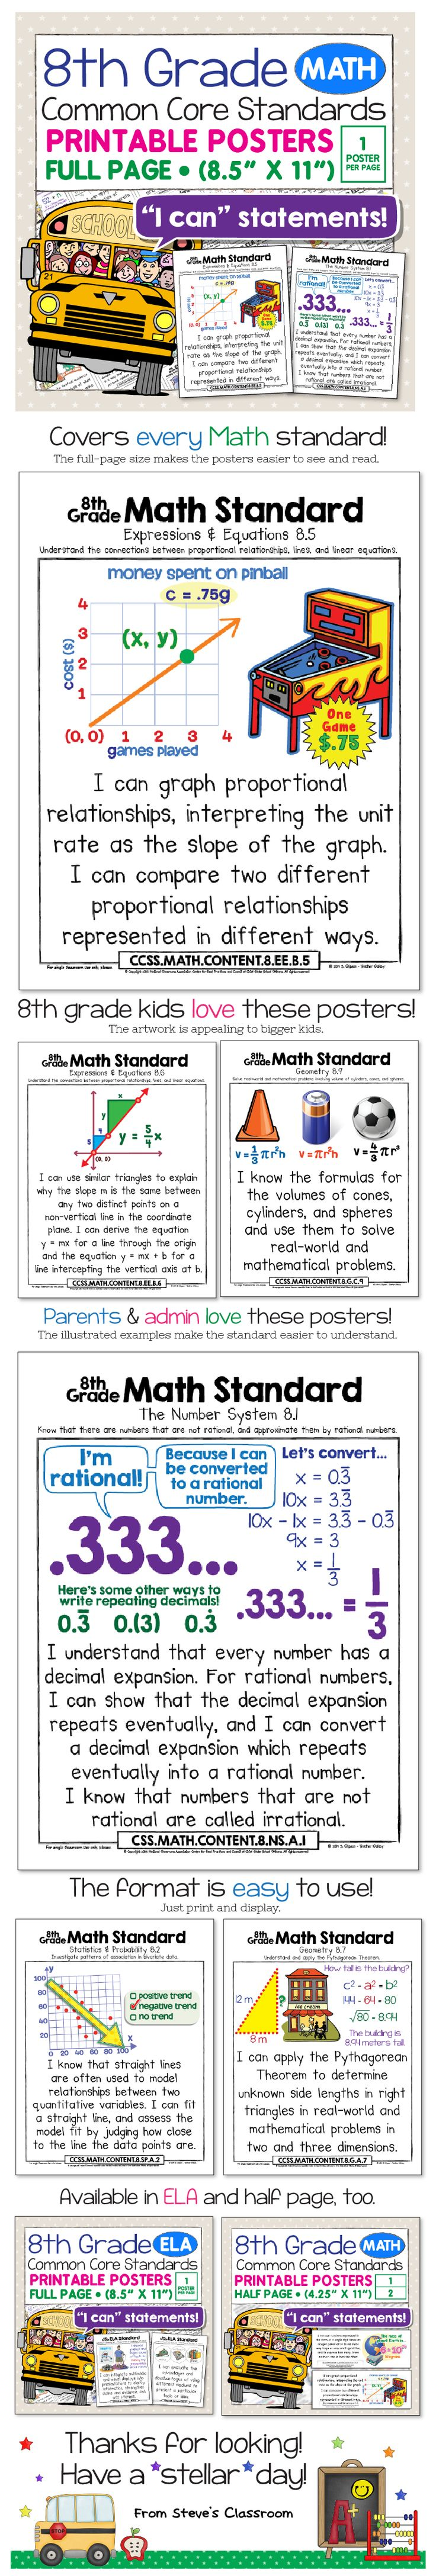 """These posters for the 8th grade math Common Core Standards bring the standard to life and make it easier to understand with age-appropriate illustrations and kid-friendly """"I can"""" language. Big, colorful, age-appropriate posters for the eighth grade math common core! $"""